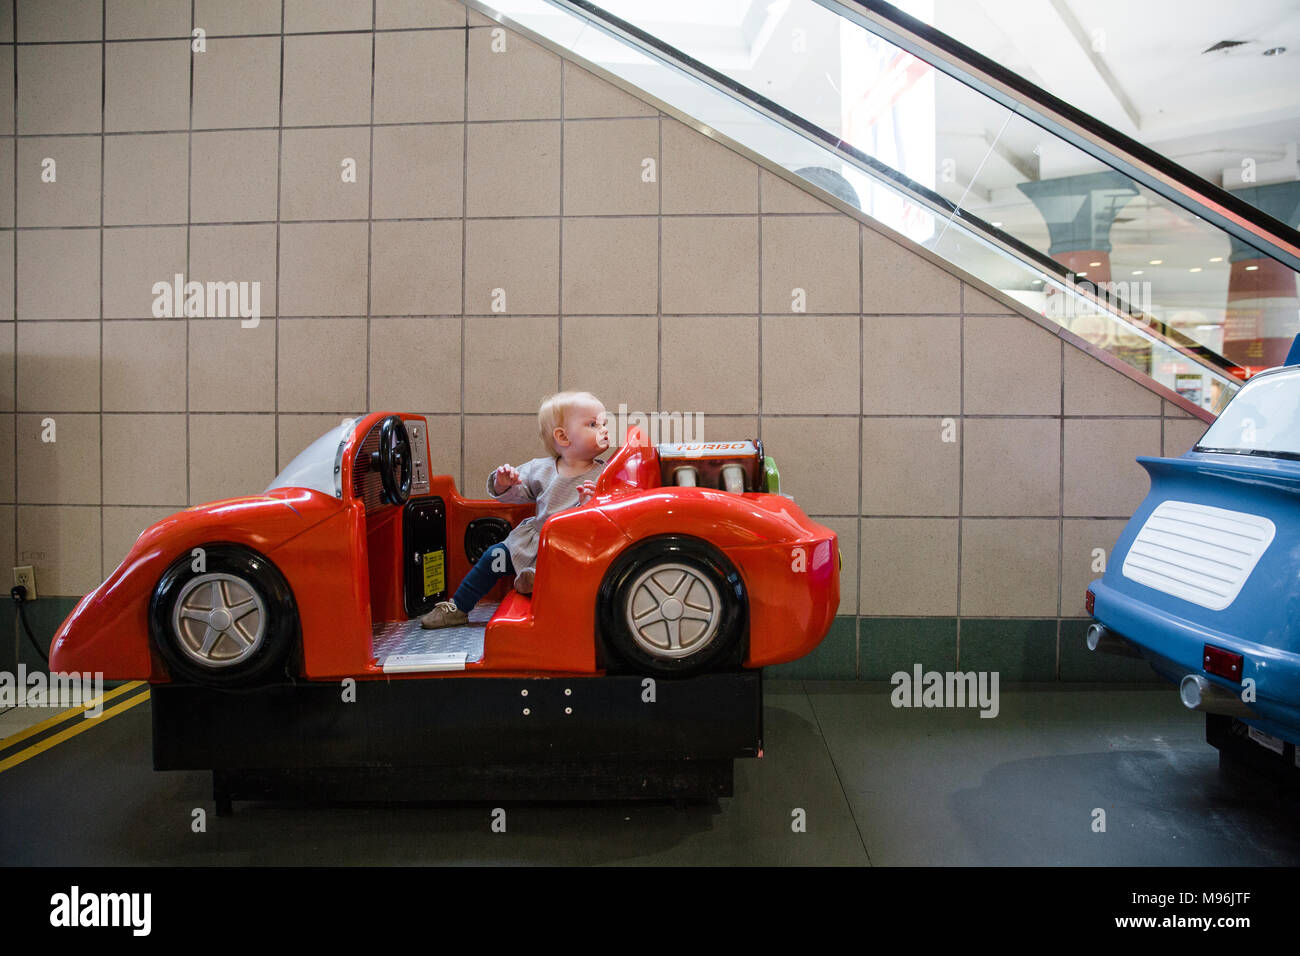 Baby sitting in car riding toy - Stock Image